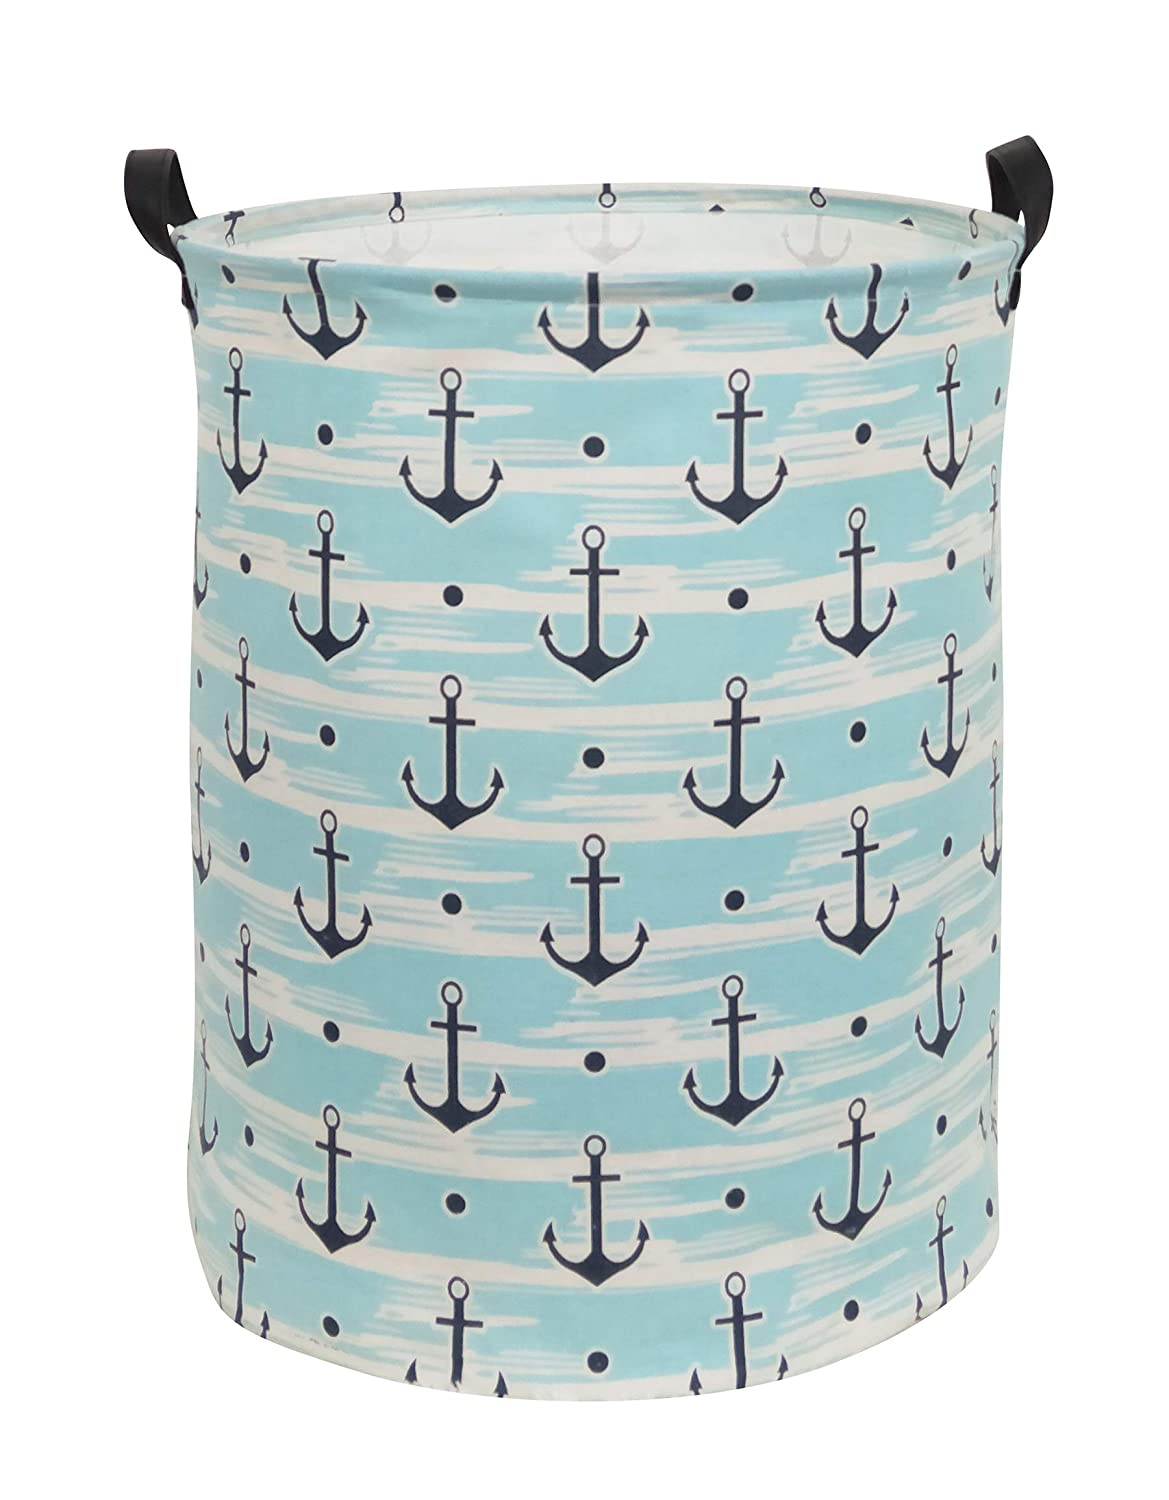 Sanjiaofen Large Storage Bins,Canvas Fabric Laundry Basket Collapsible Storage Baskets for Home,Office,Toy Organizer,Home Decor Blue Anchor